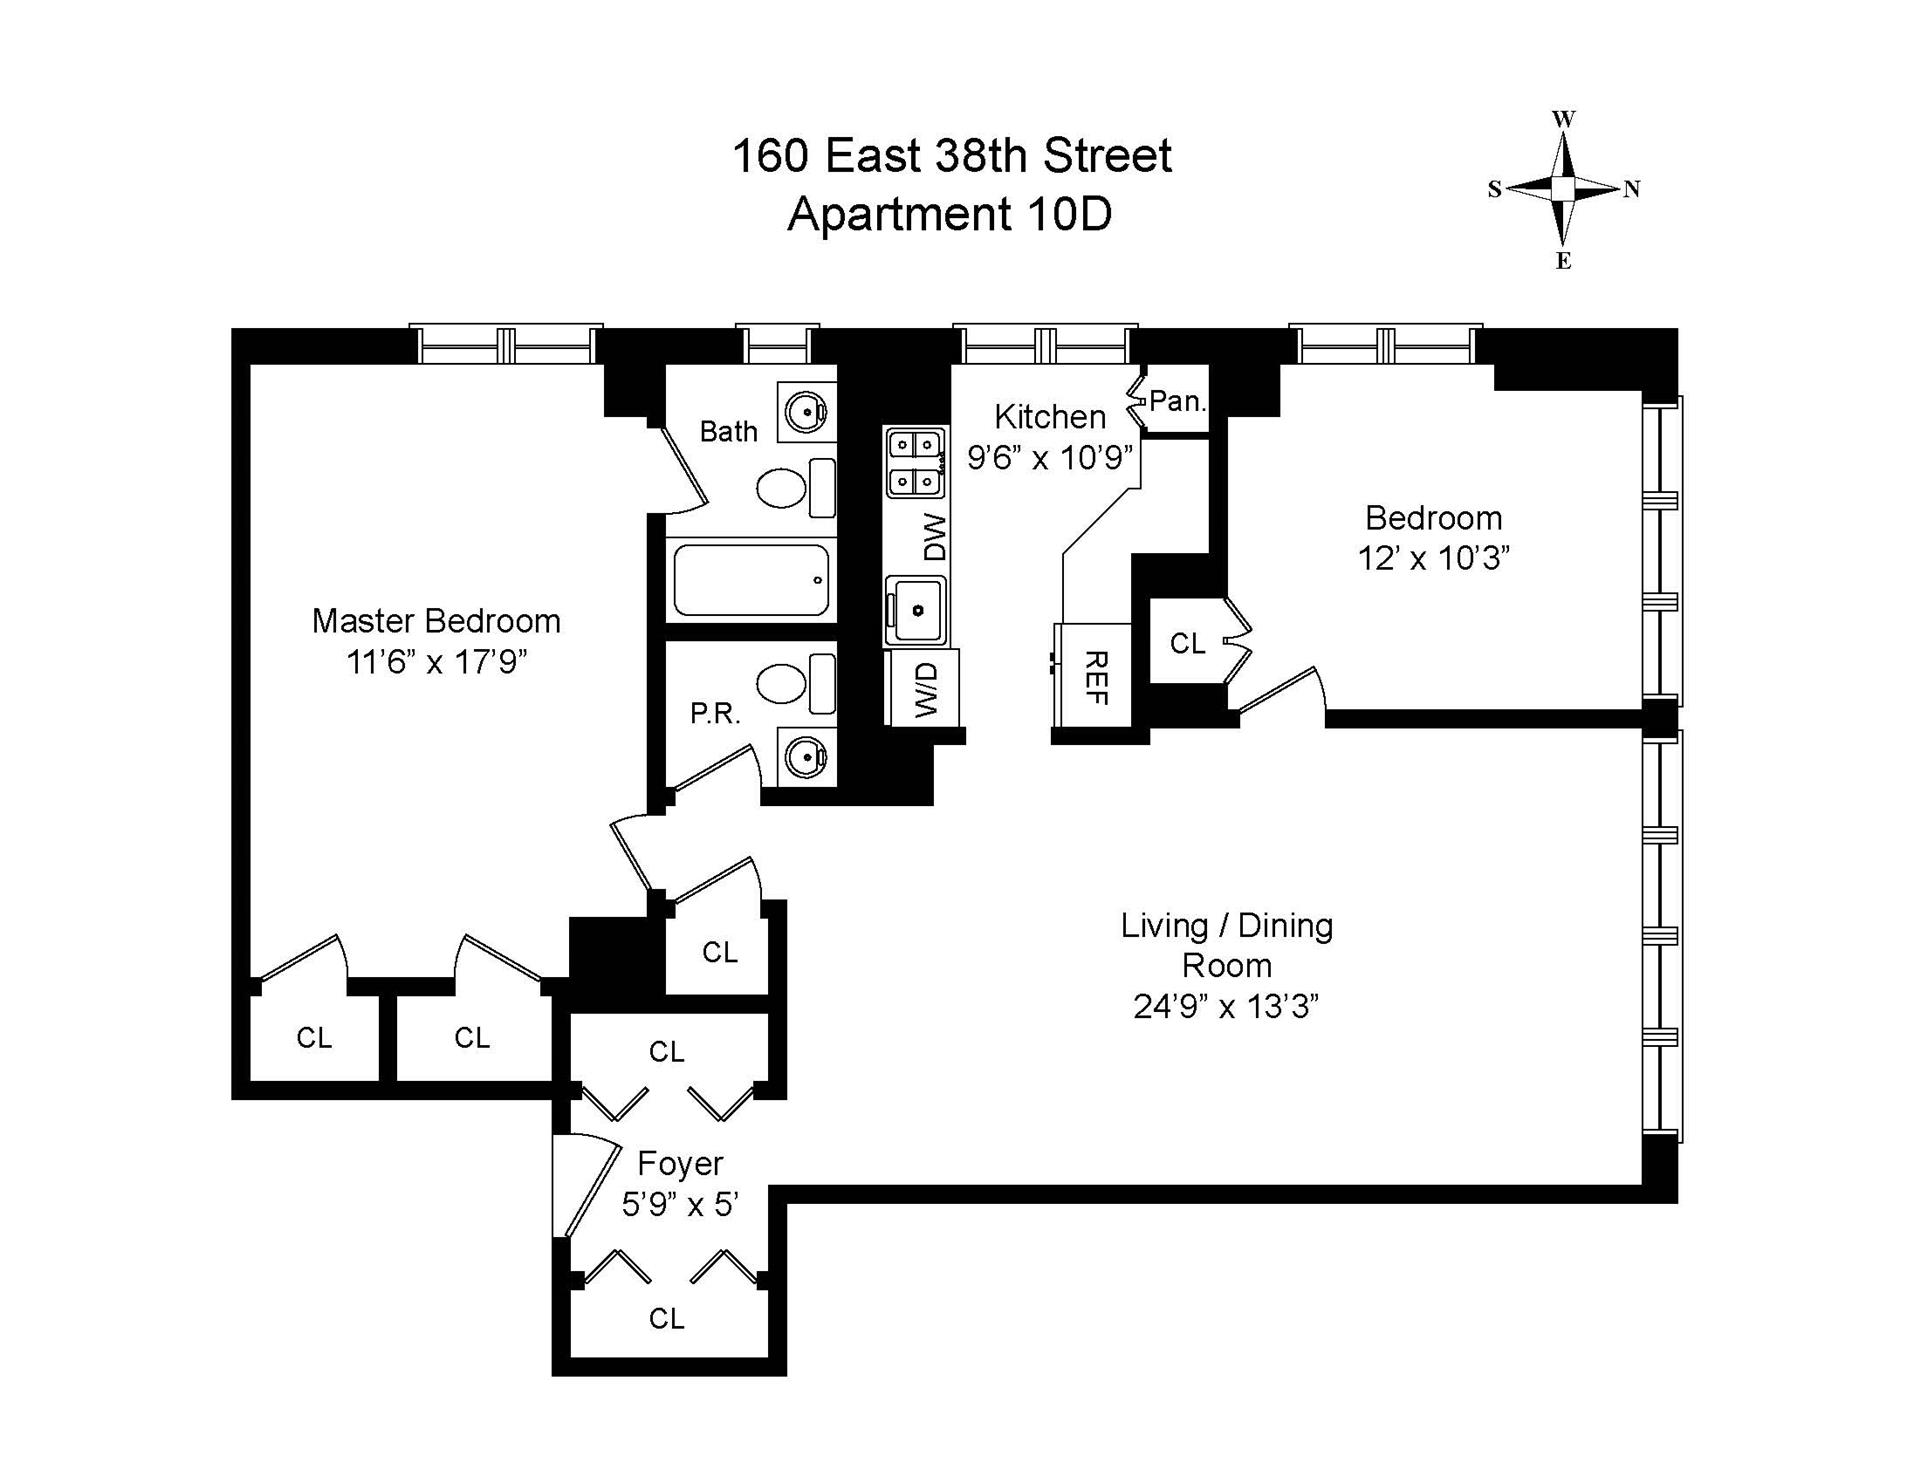 Floor plan of 160 East 38th St, 10D - Murray Hill, New York